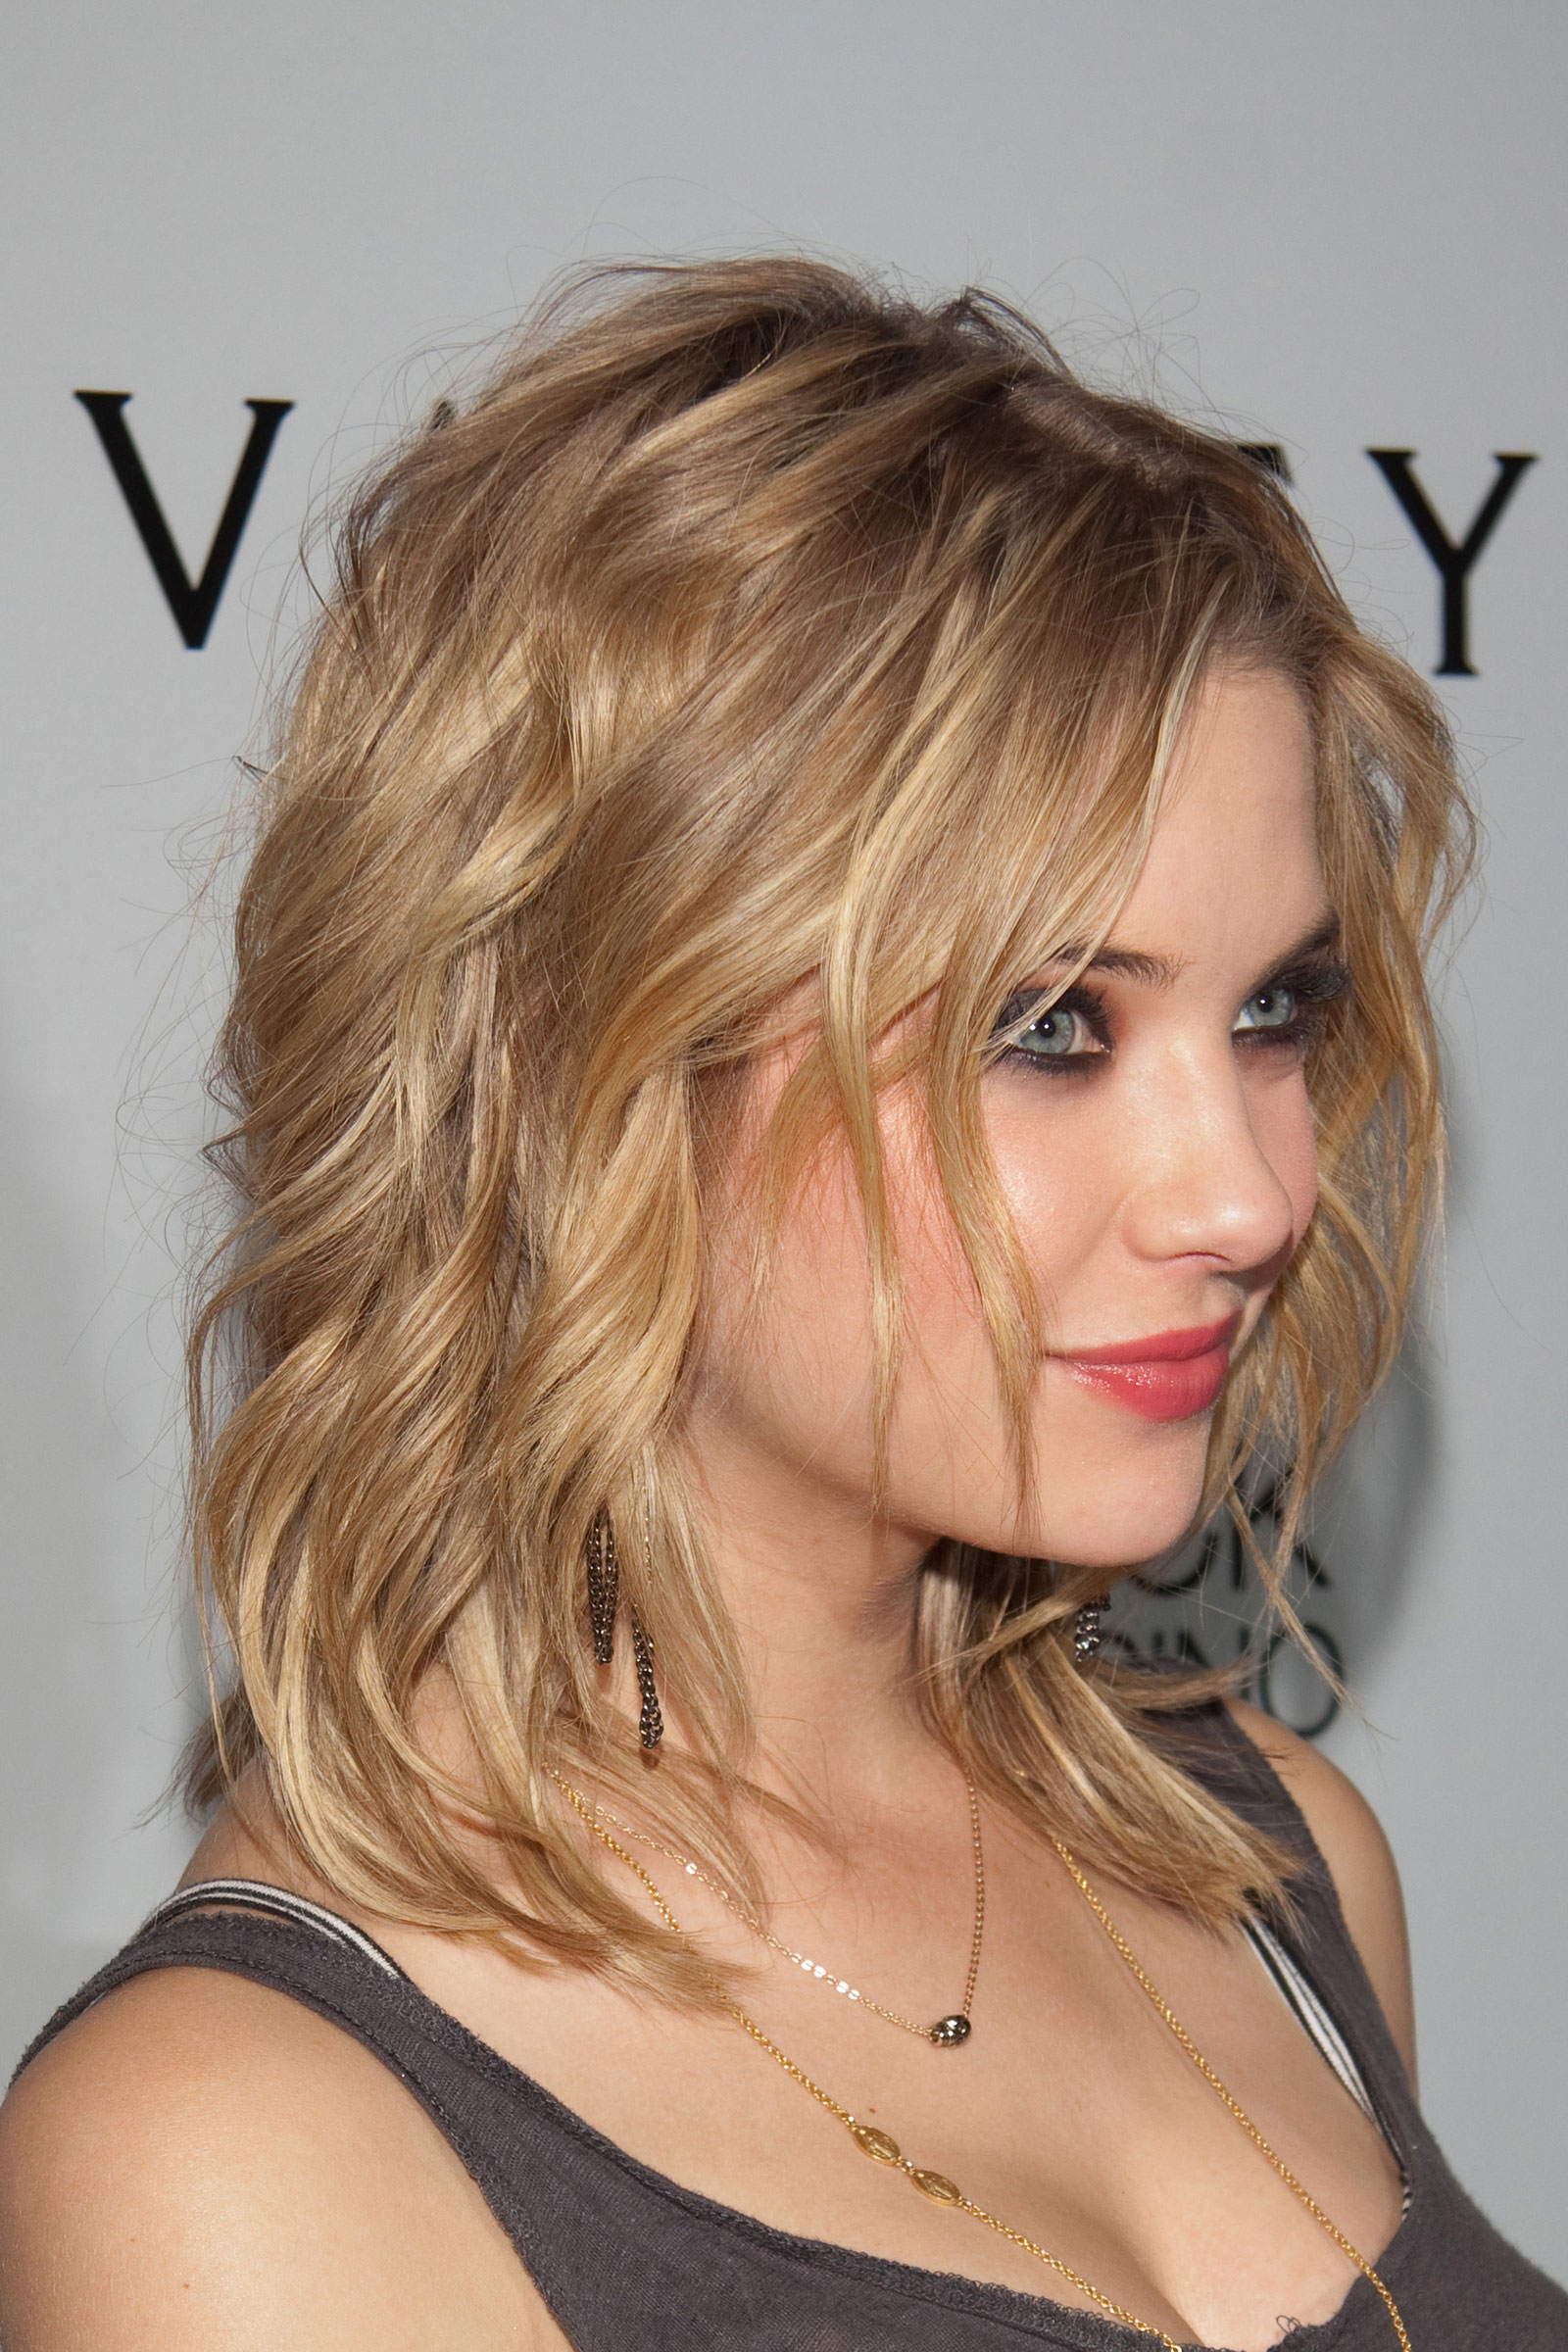 Ashbenzo dating games